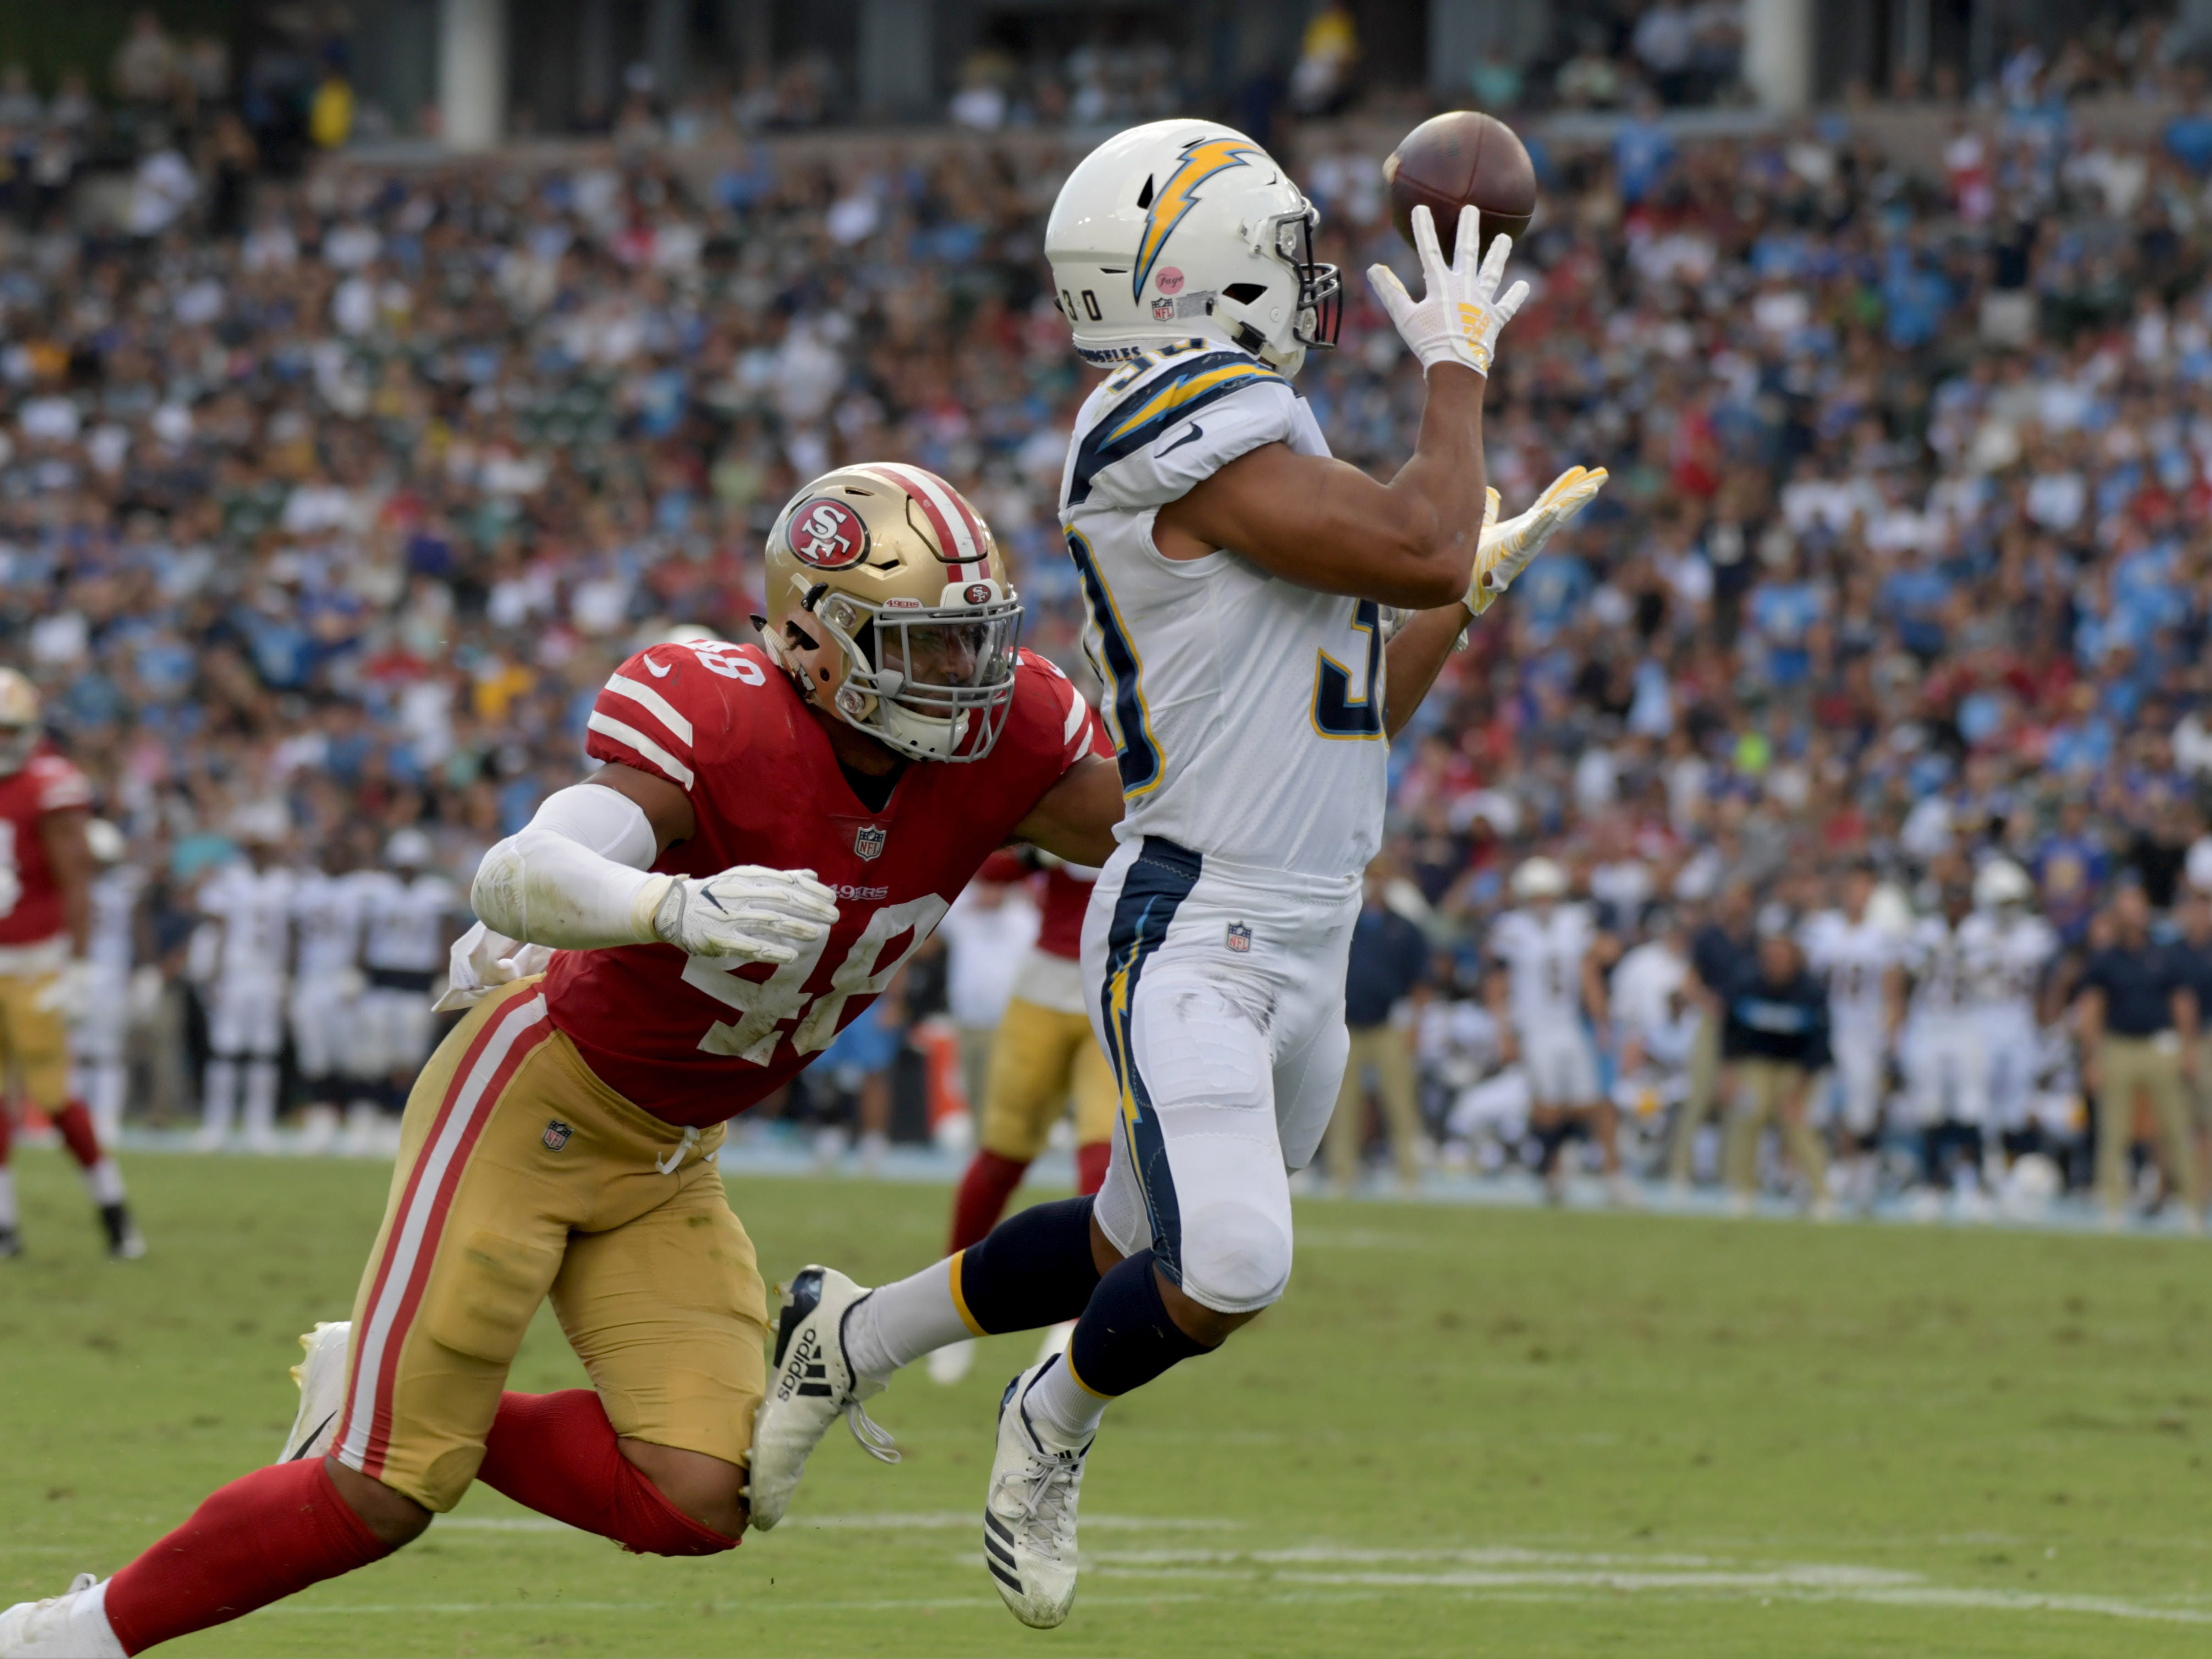 Los Angeles Chargers running back Austin Ekeler is tackled by San Francisco 49ers linebacker Fred Warner in the first half at StubHub Center.